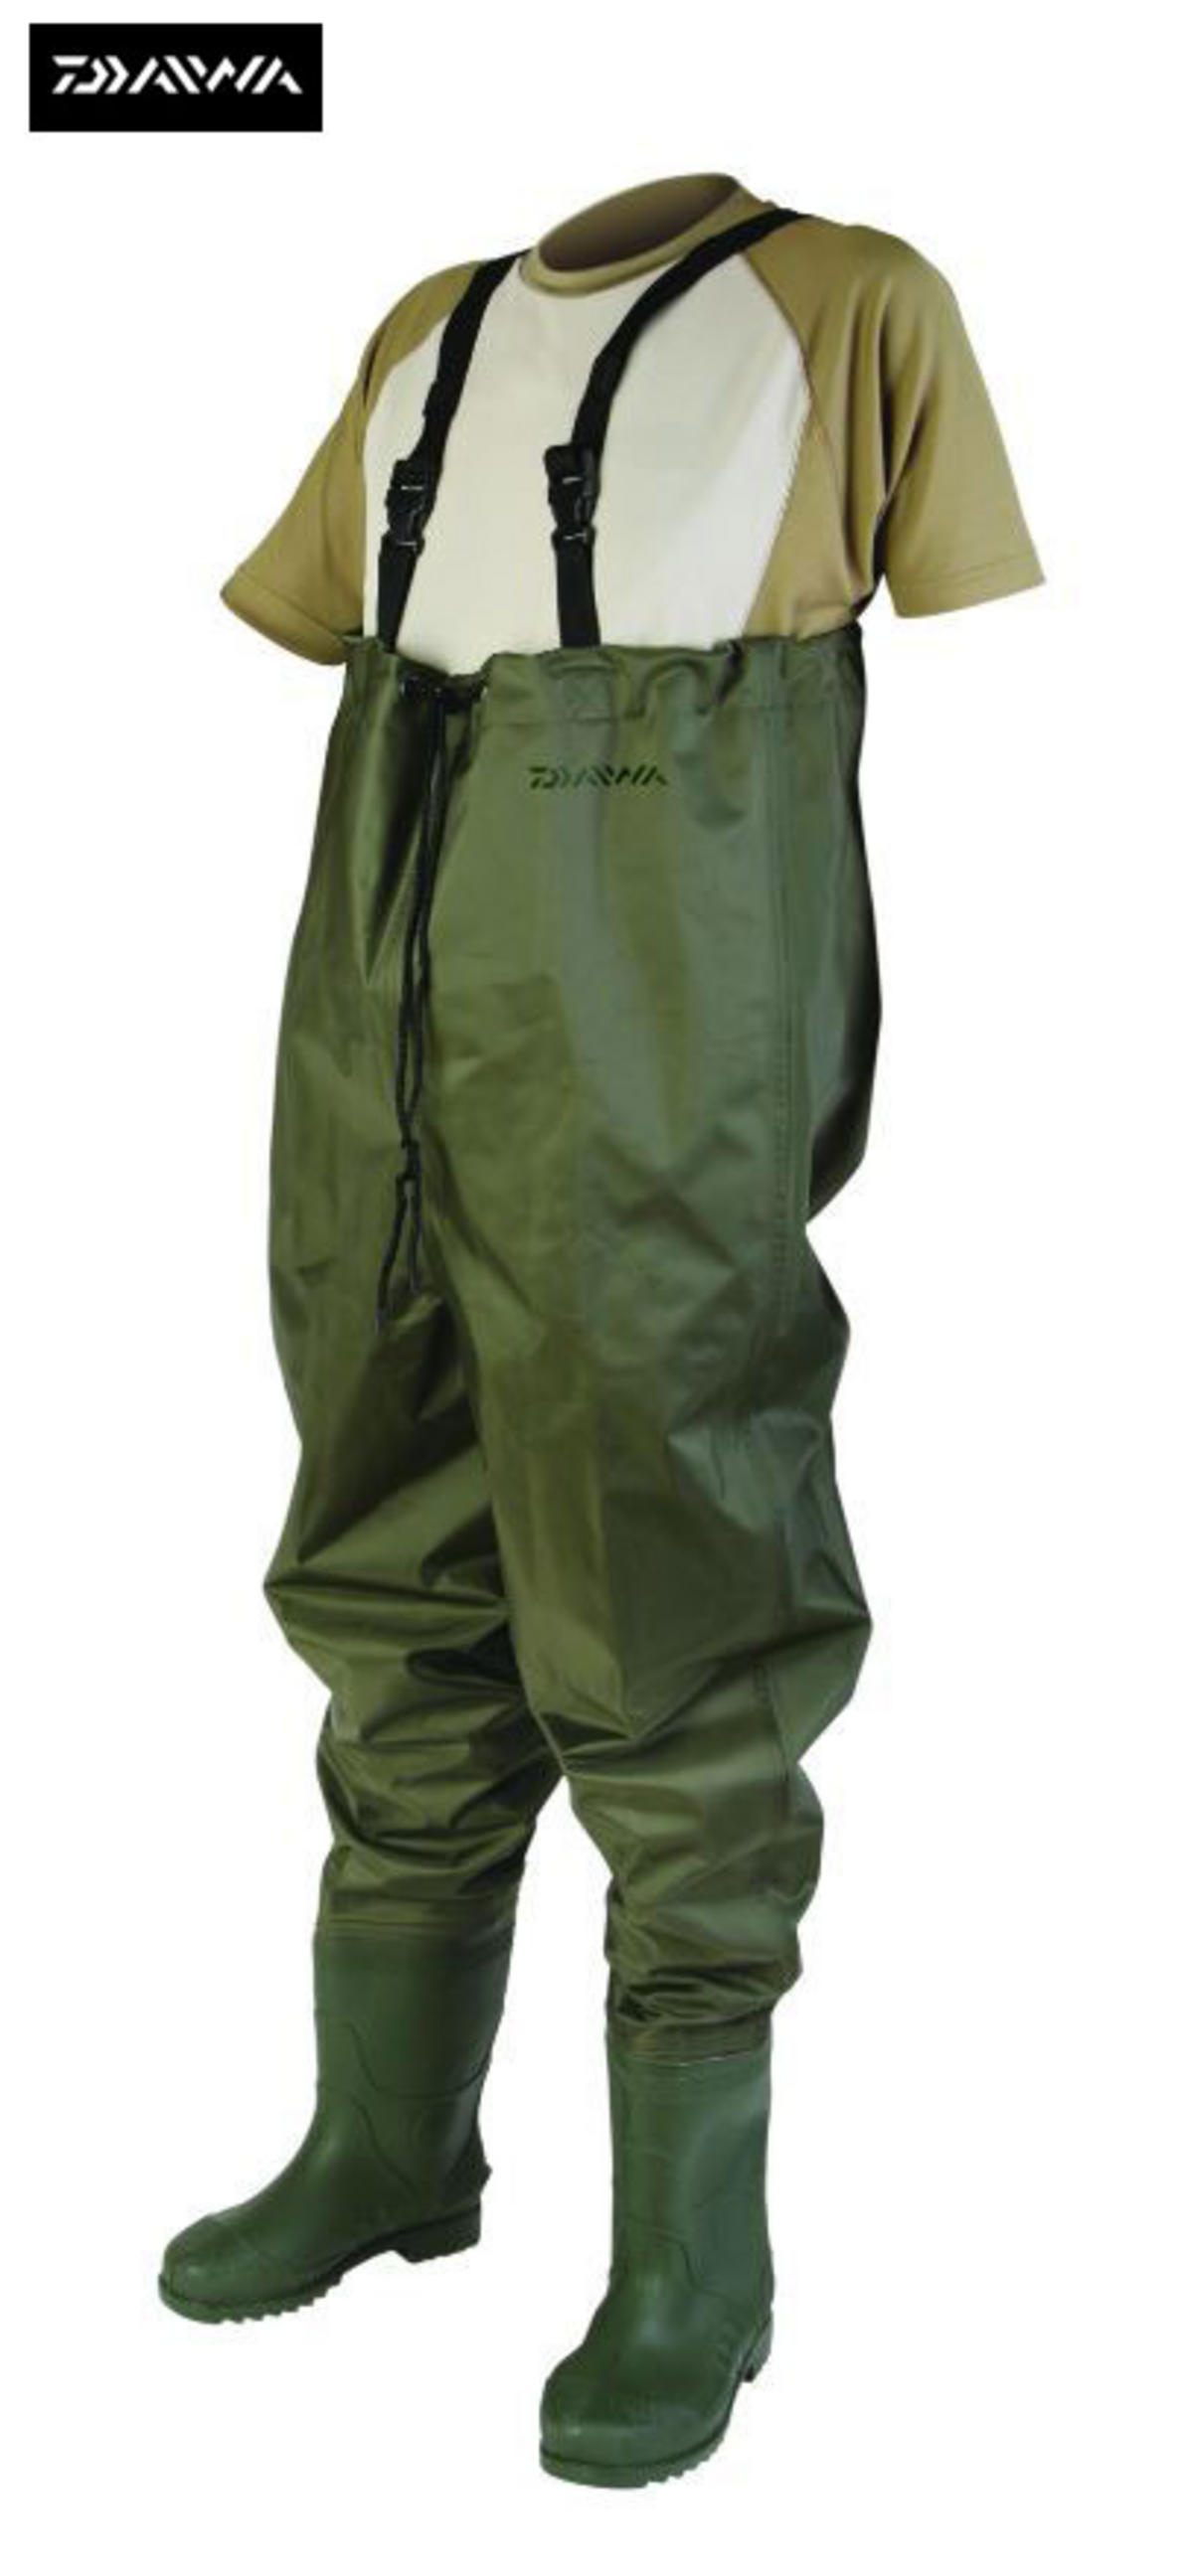 Ex Display Daiwa Lightweight Nylon Chest Waders Size 11  Model No. DNCW-11